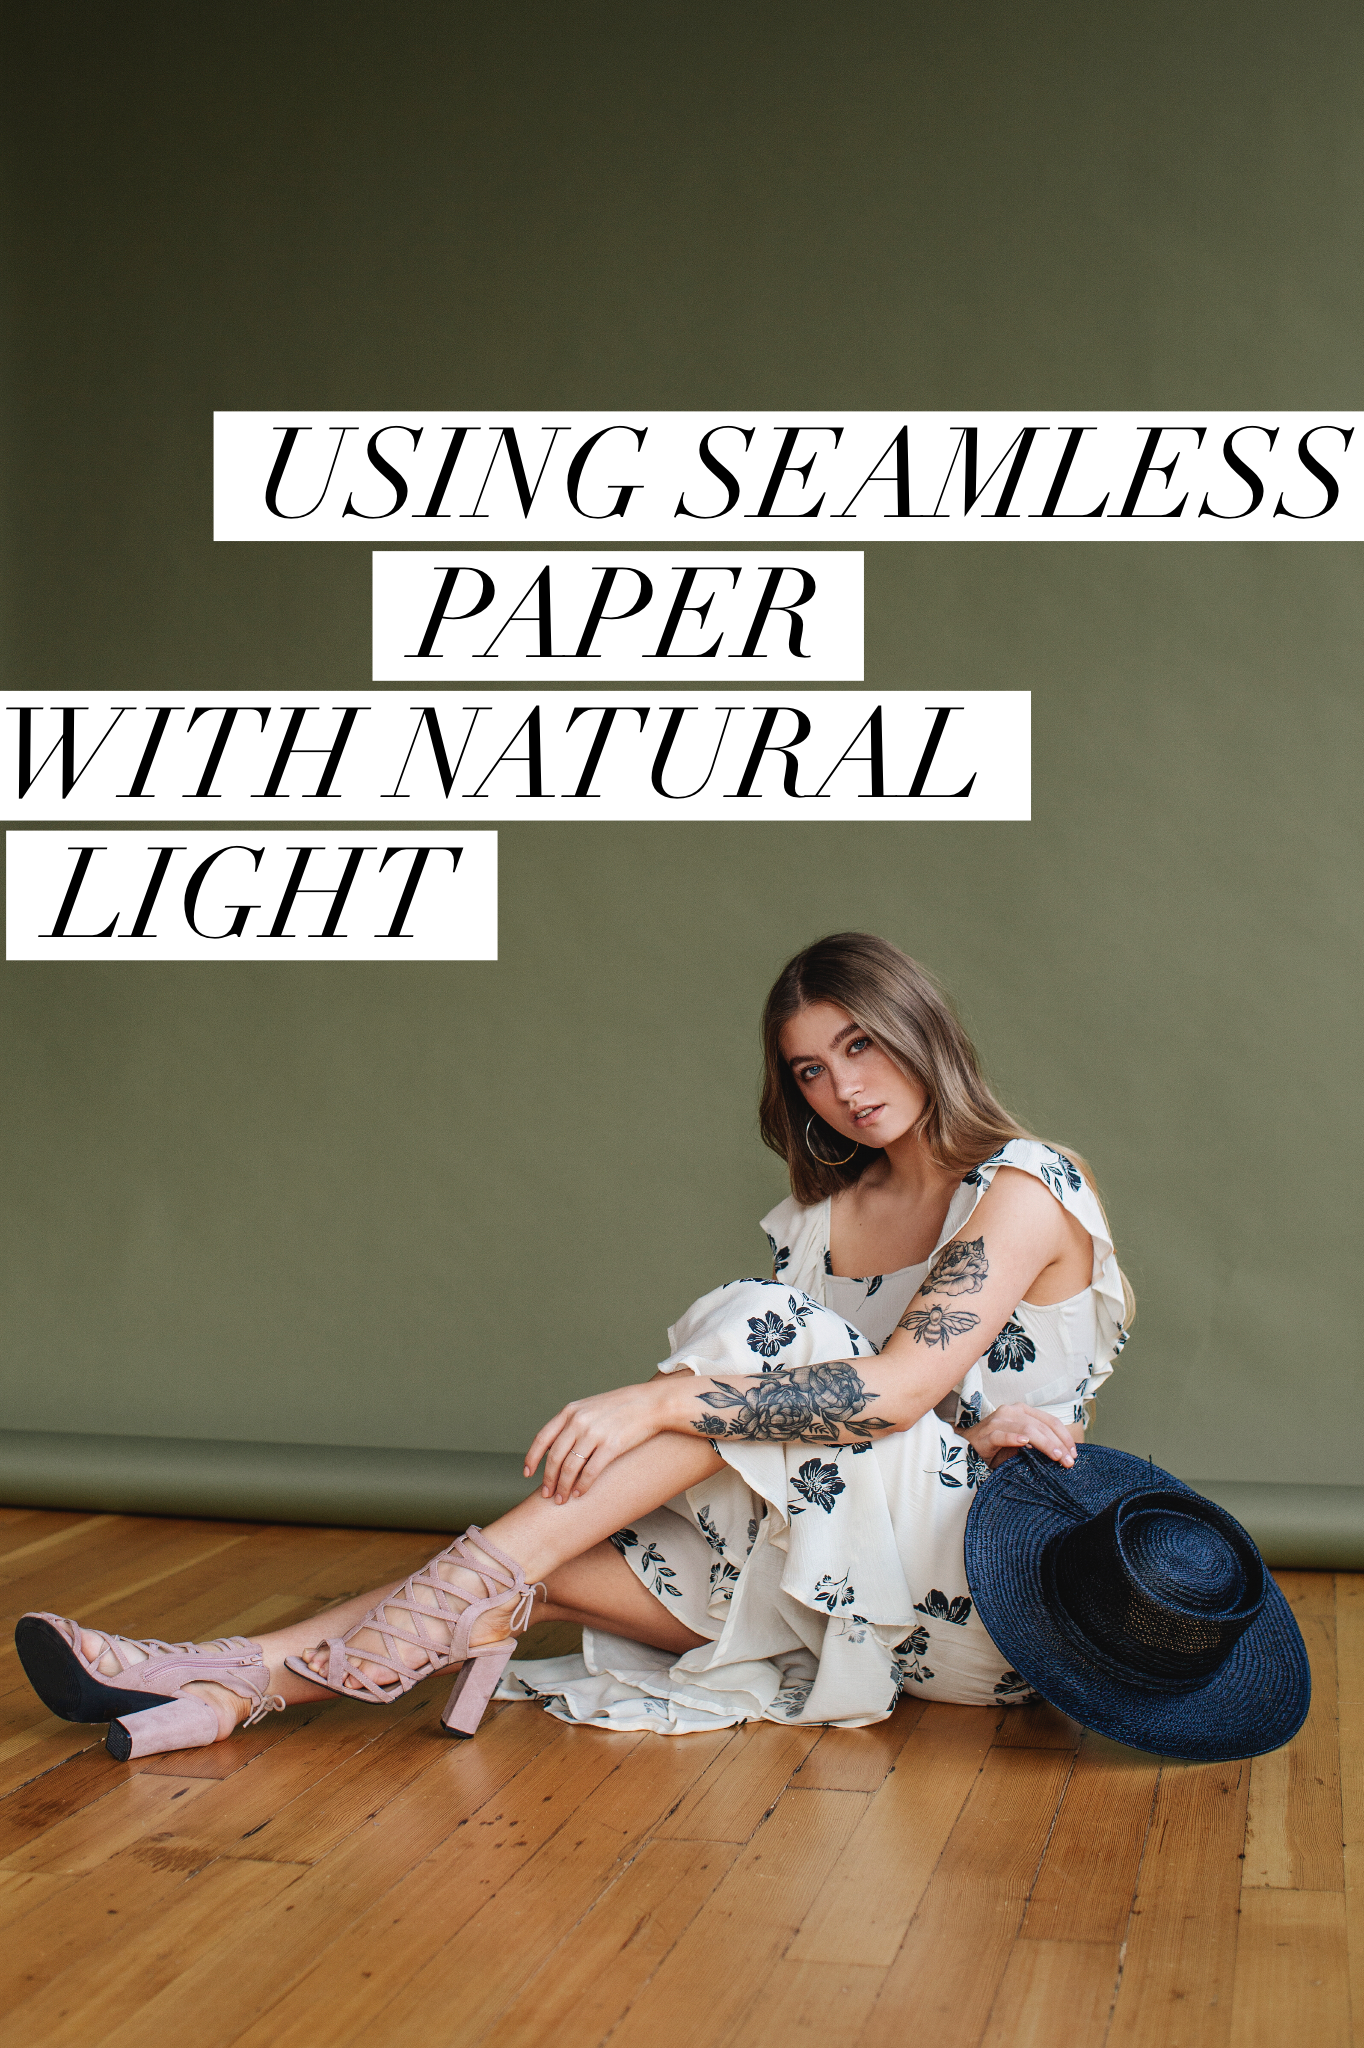 Using Savage Seamless paper with natural light